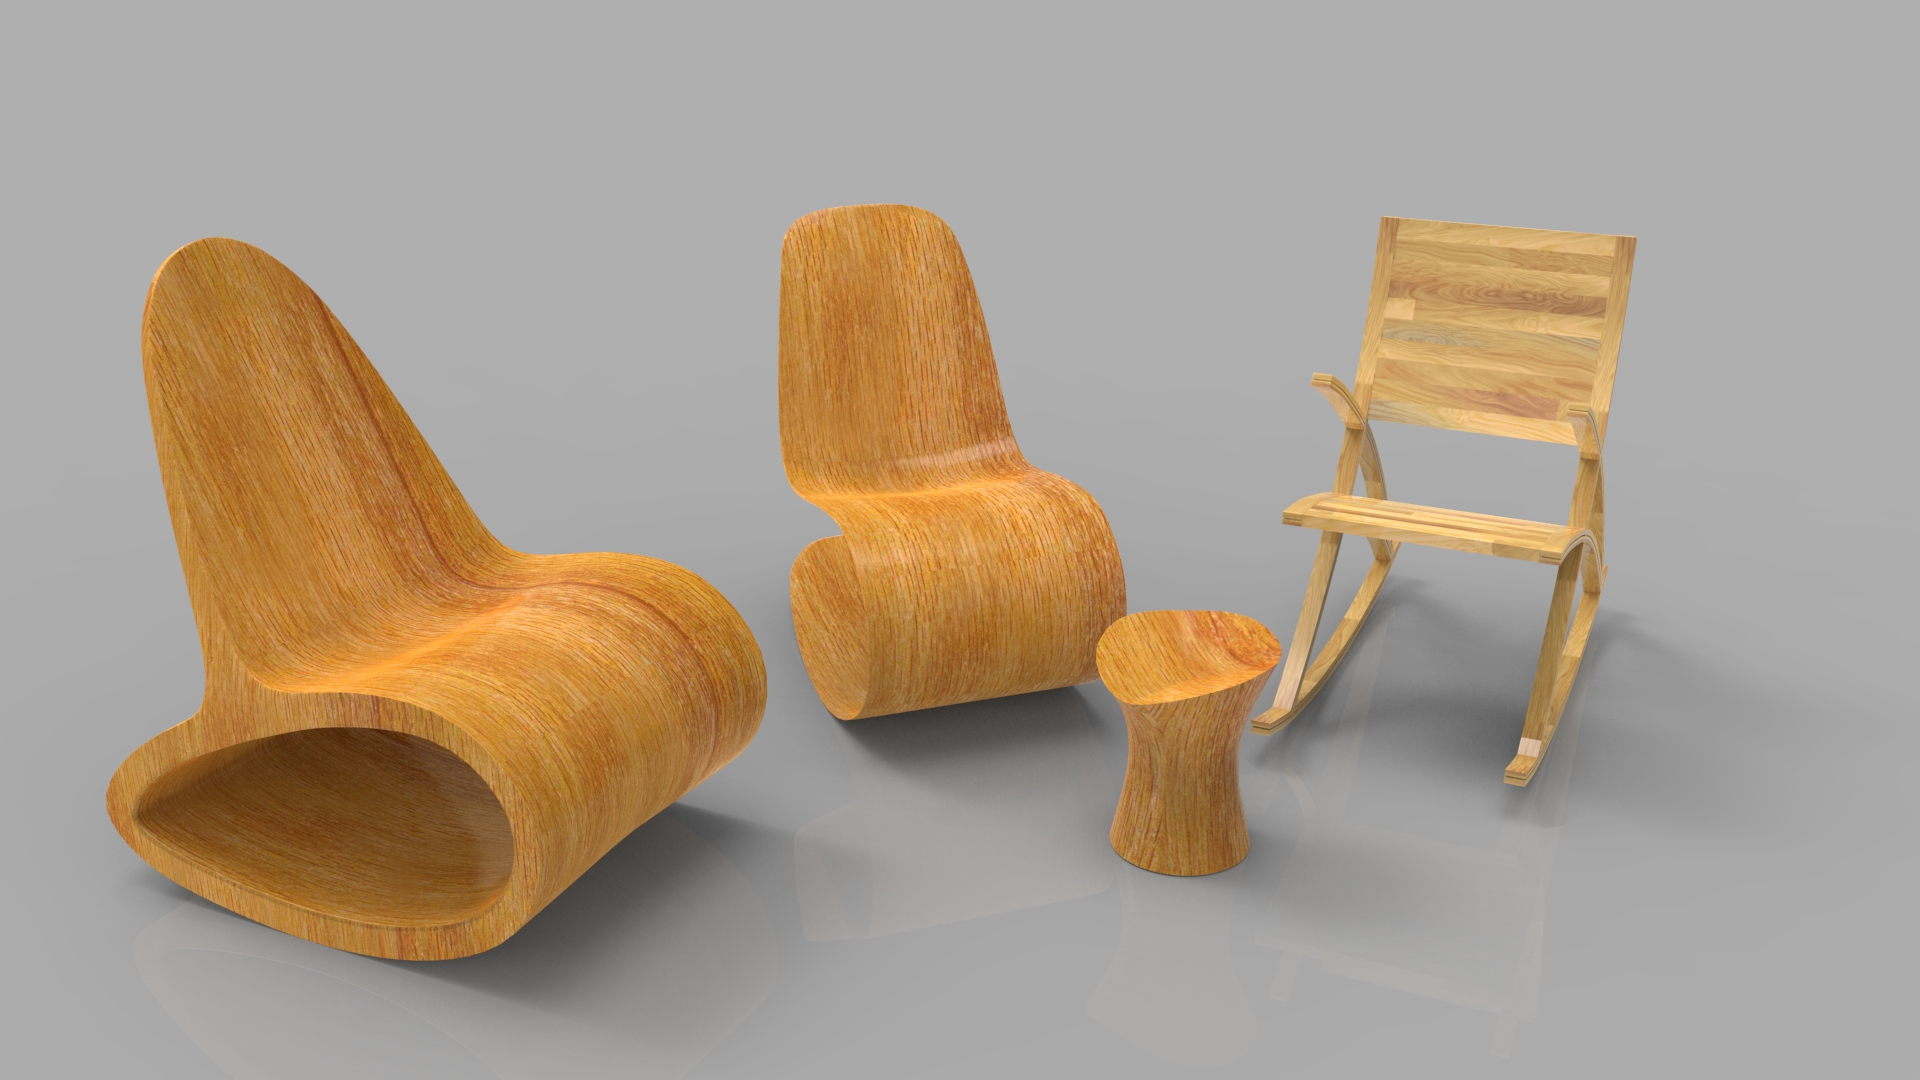 rocking wooden chair collection 3d model max fbx ma mb obj 286170